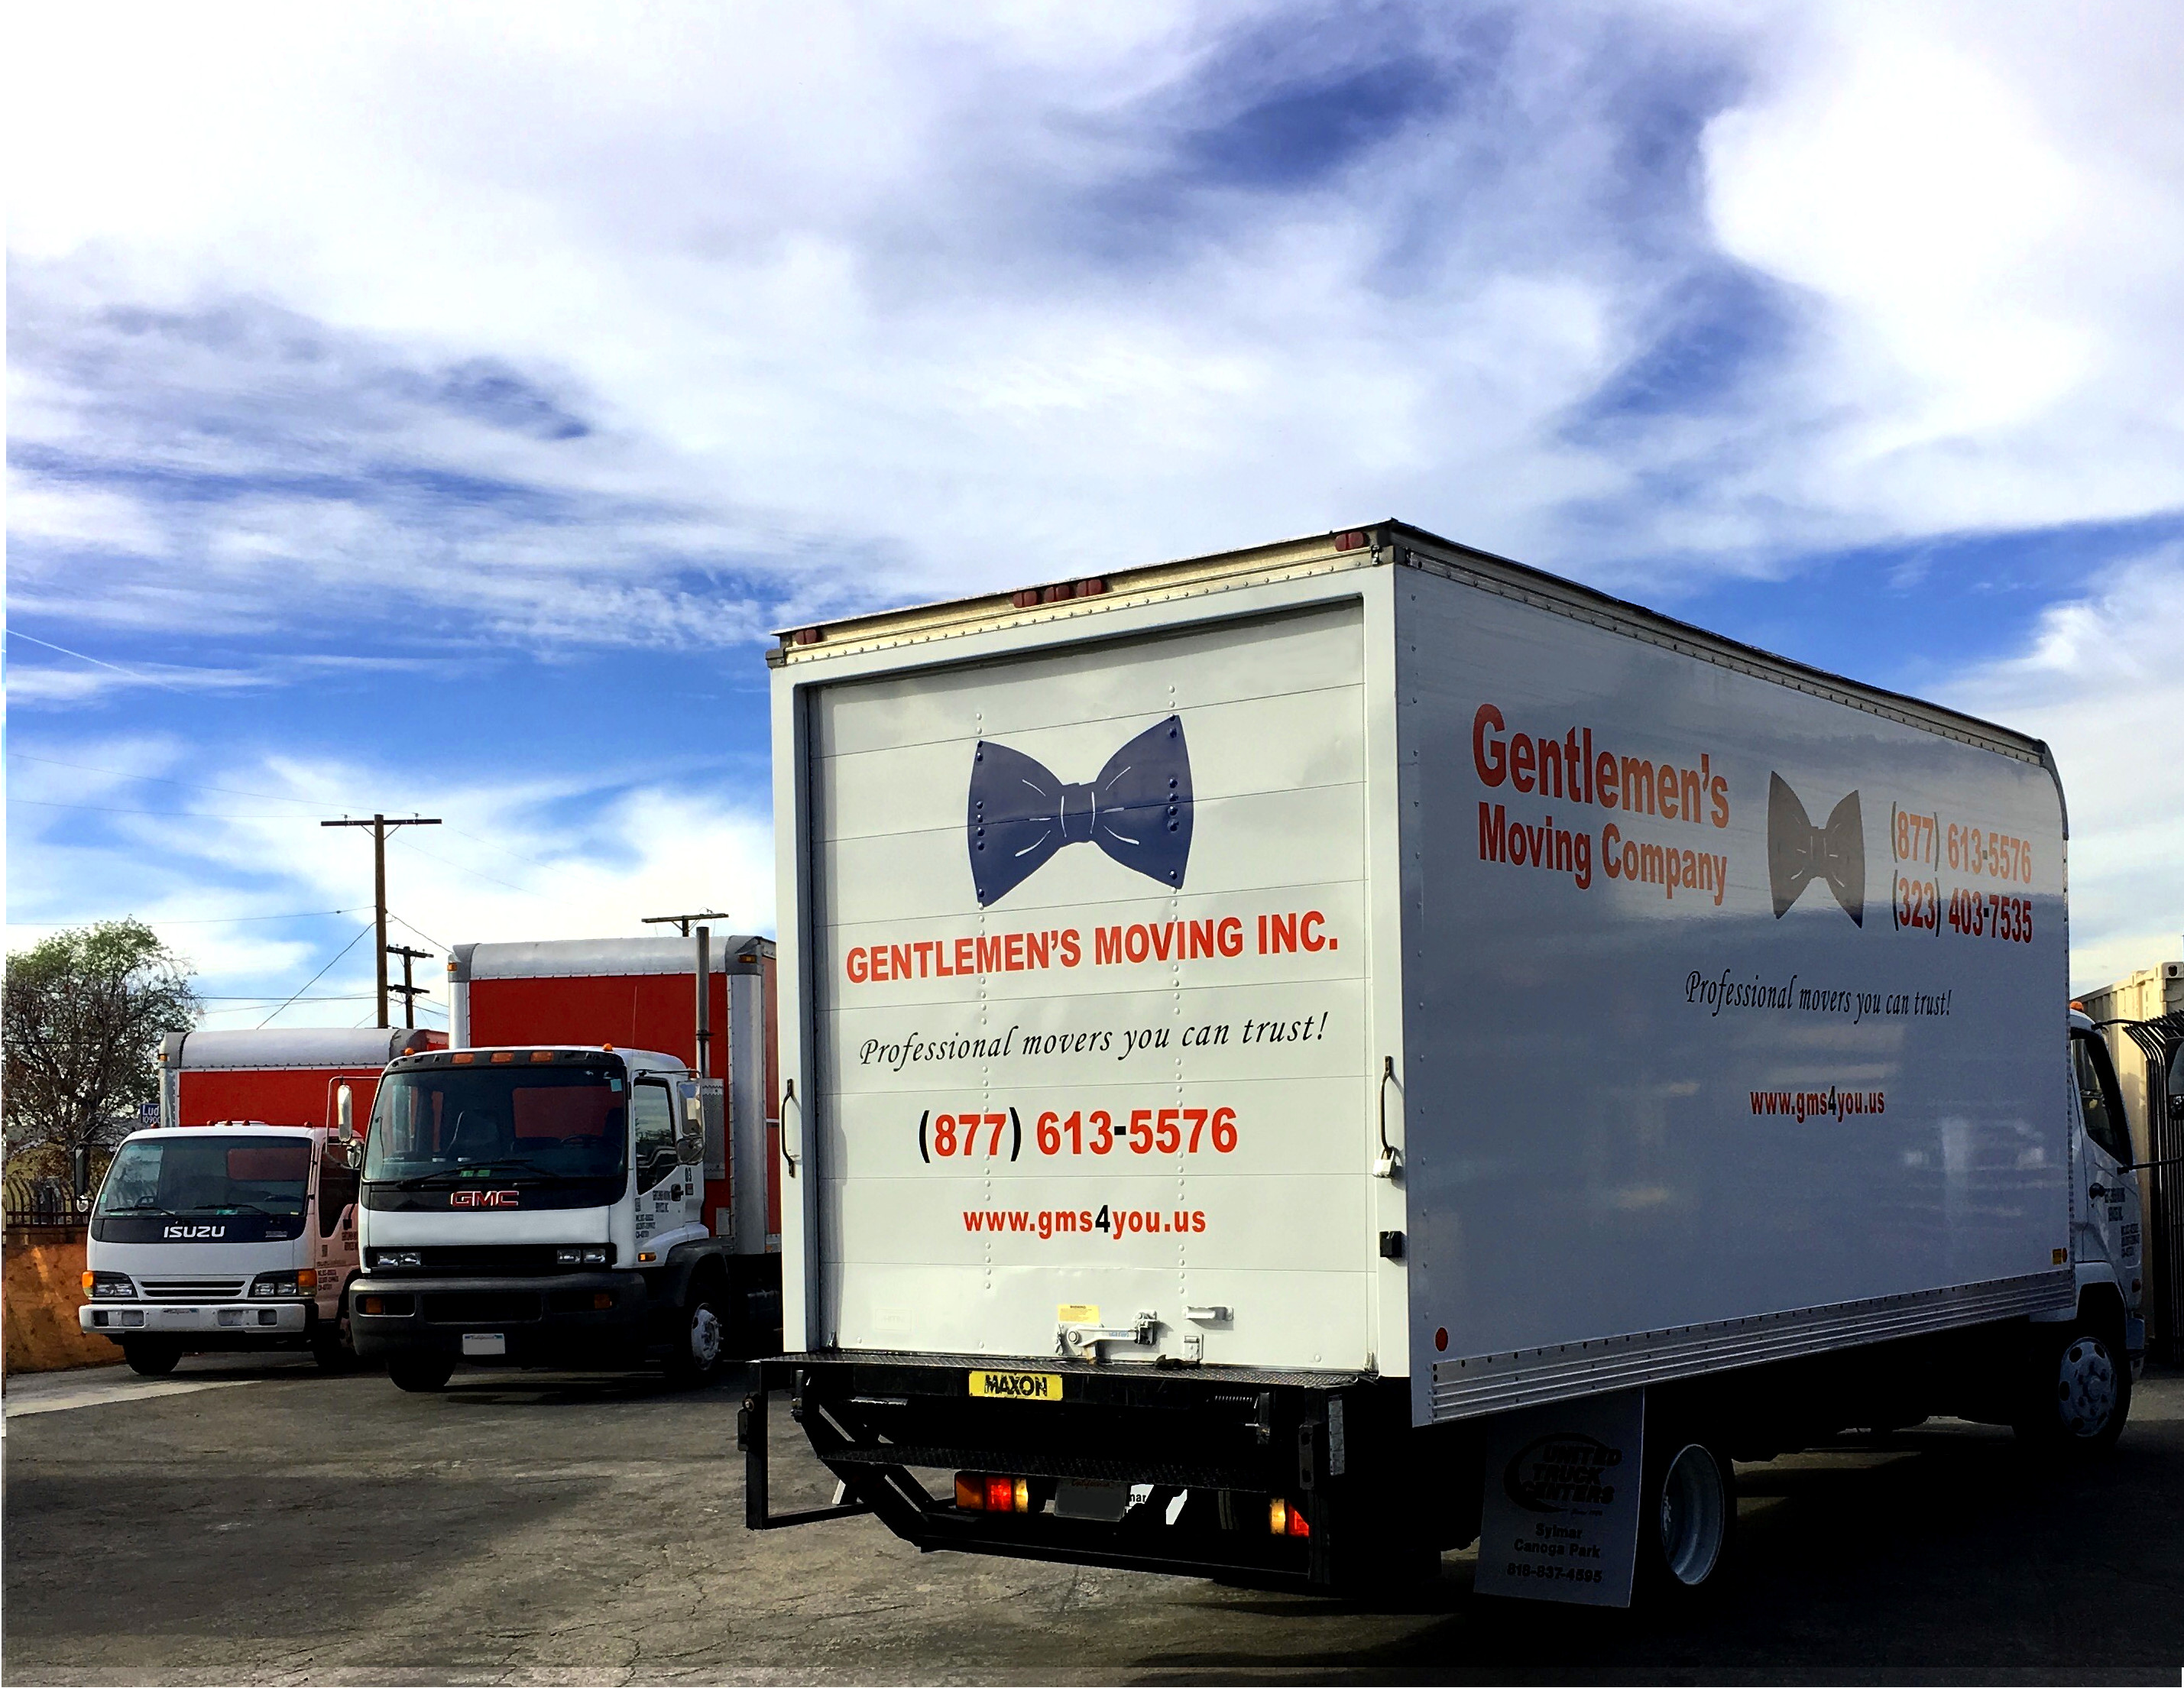 Gentlemen's Moving Trucks